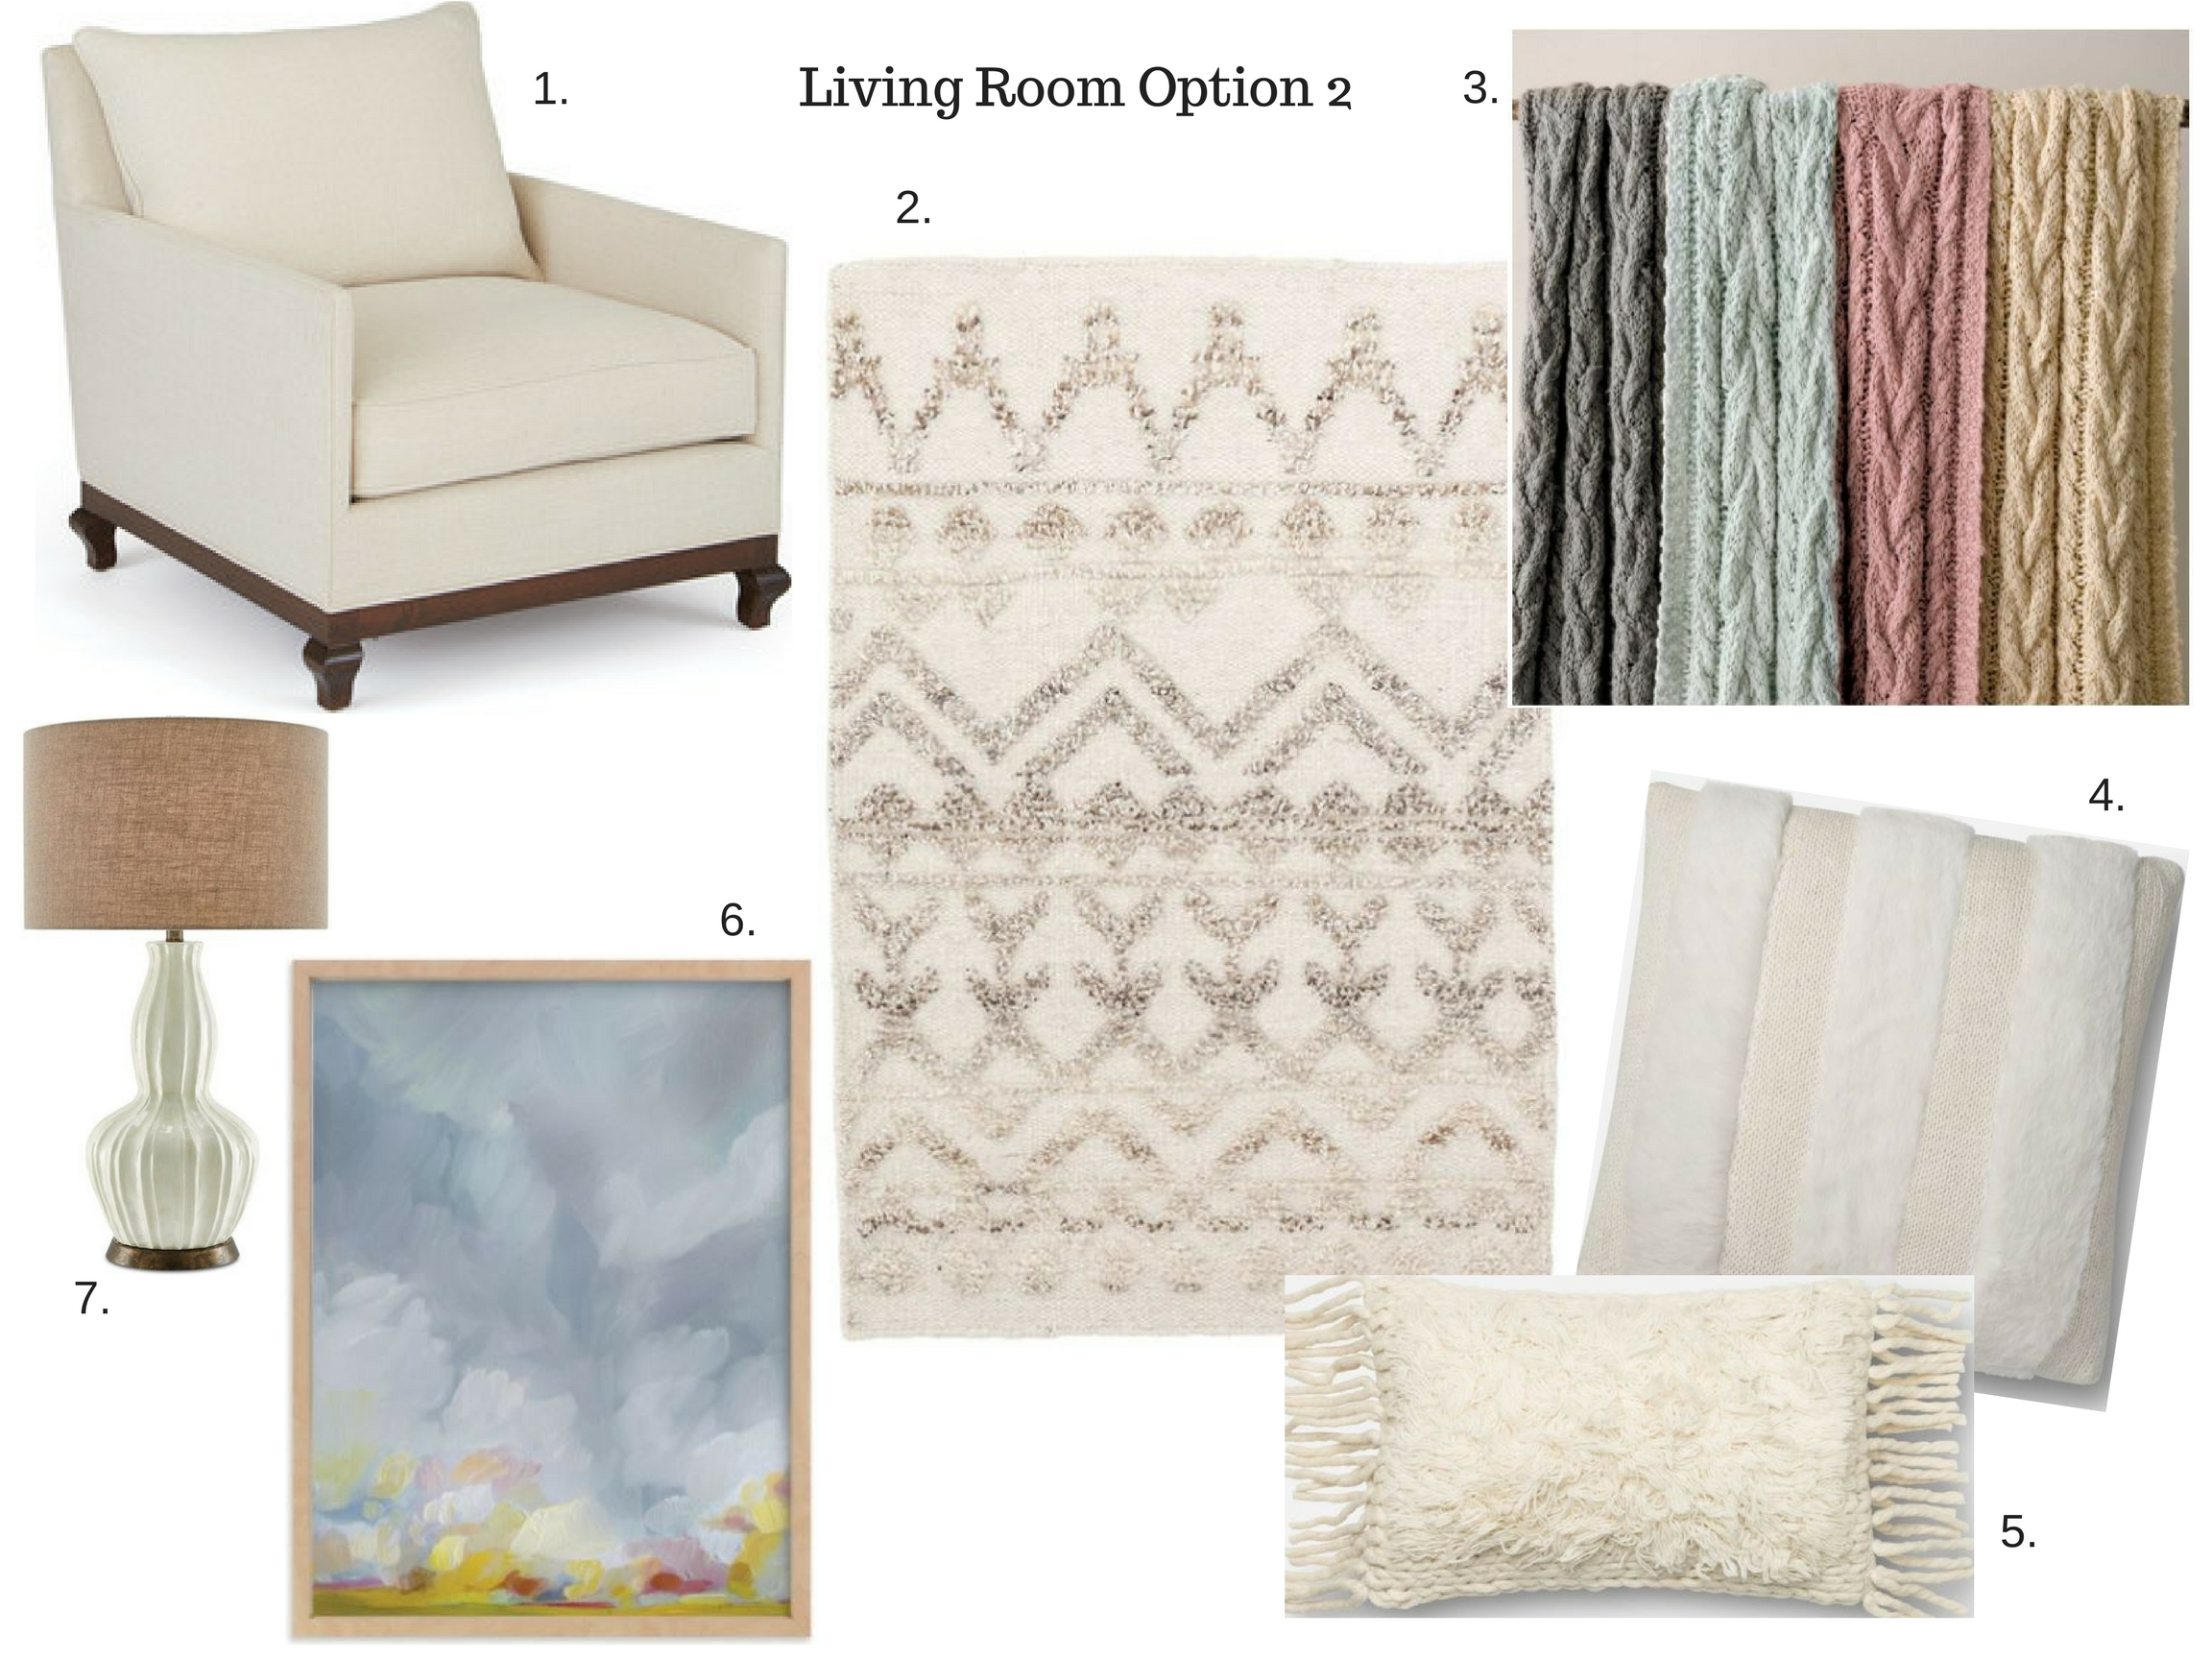 How to Make Your Home Cozy for Winter_Living Room 2.jpg